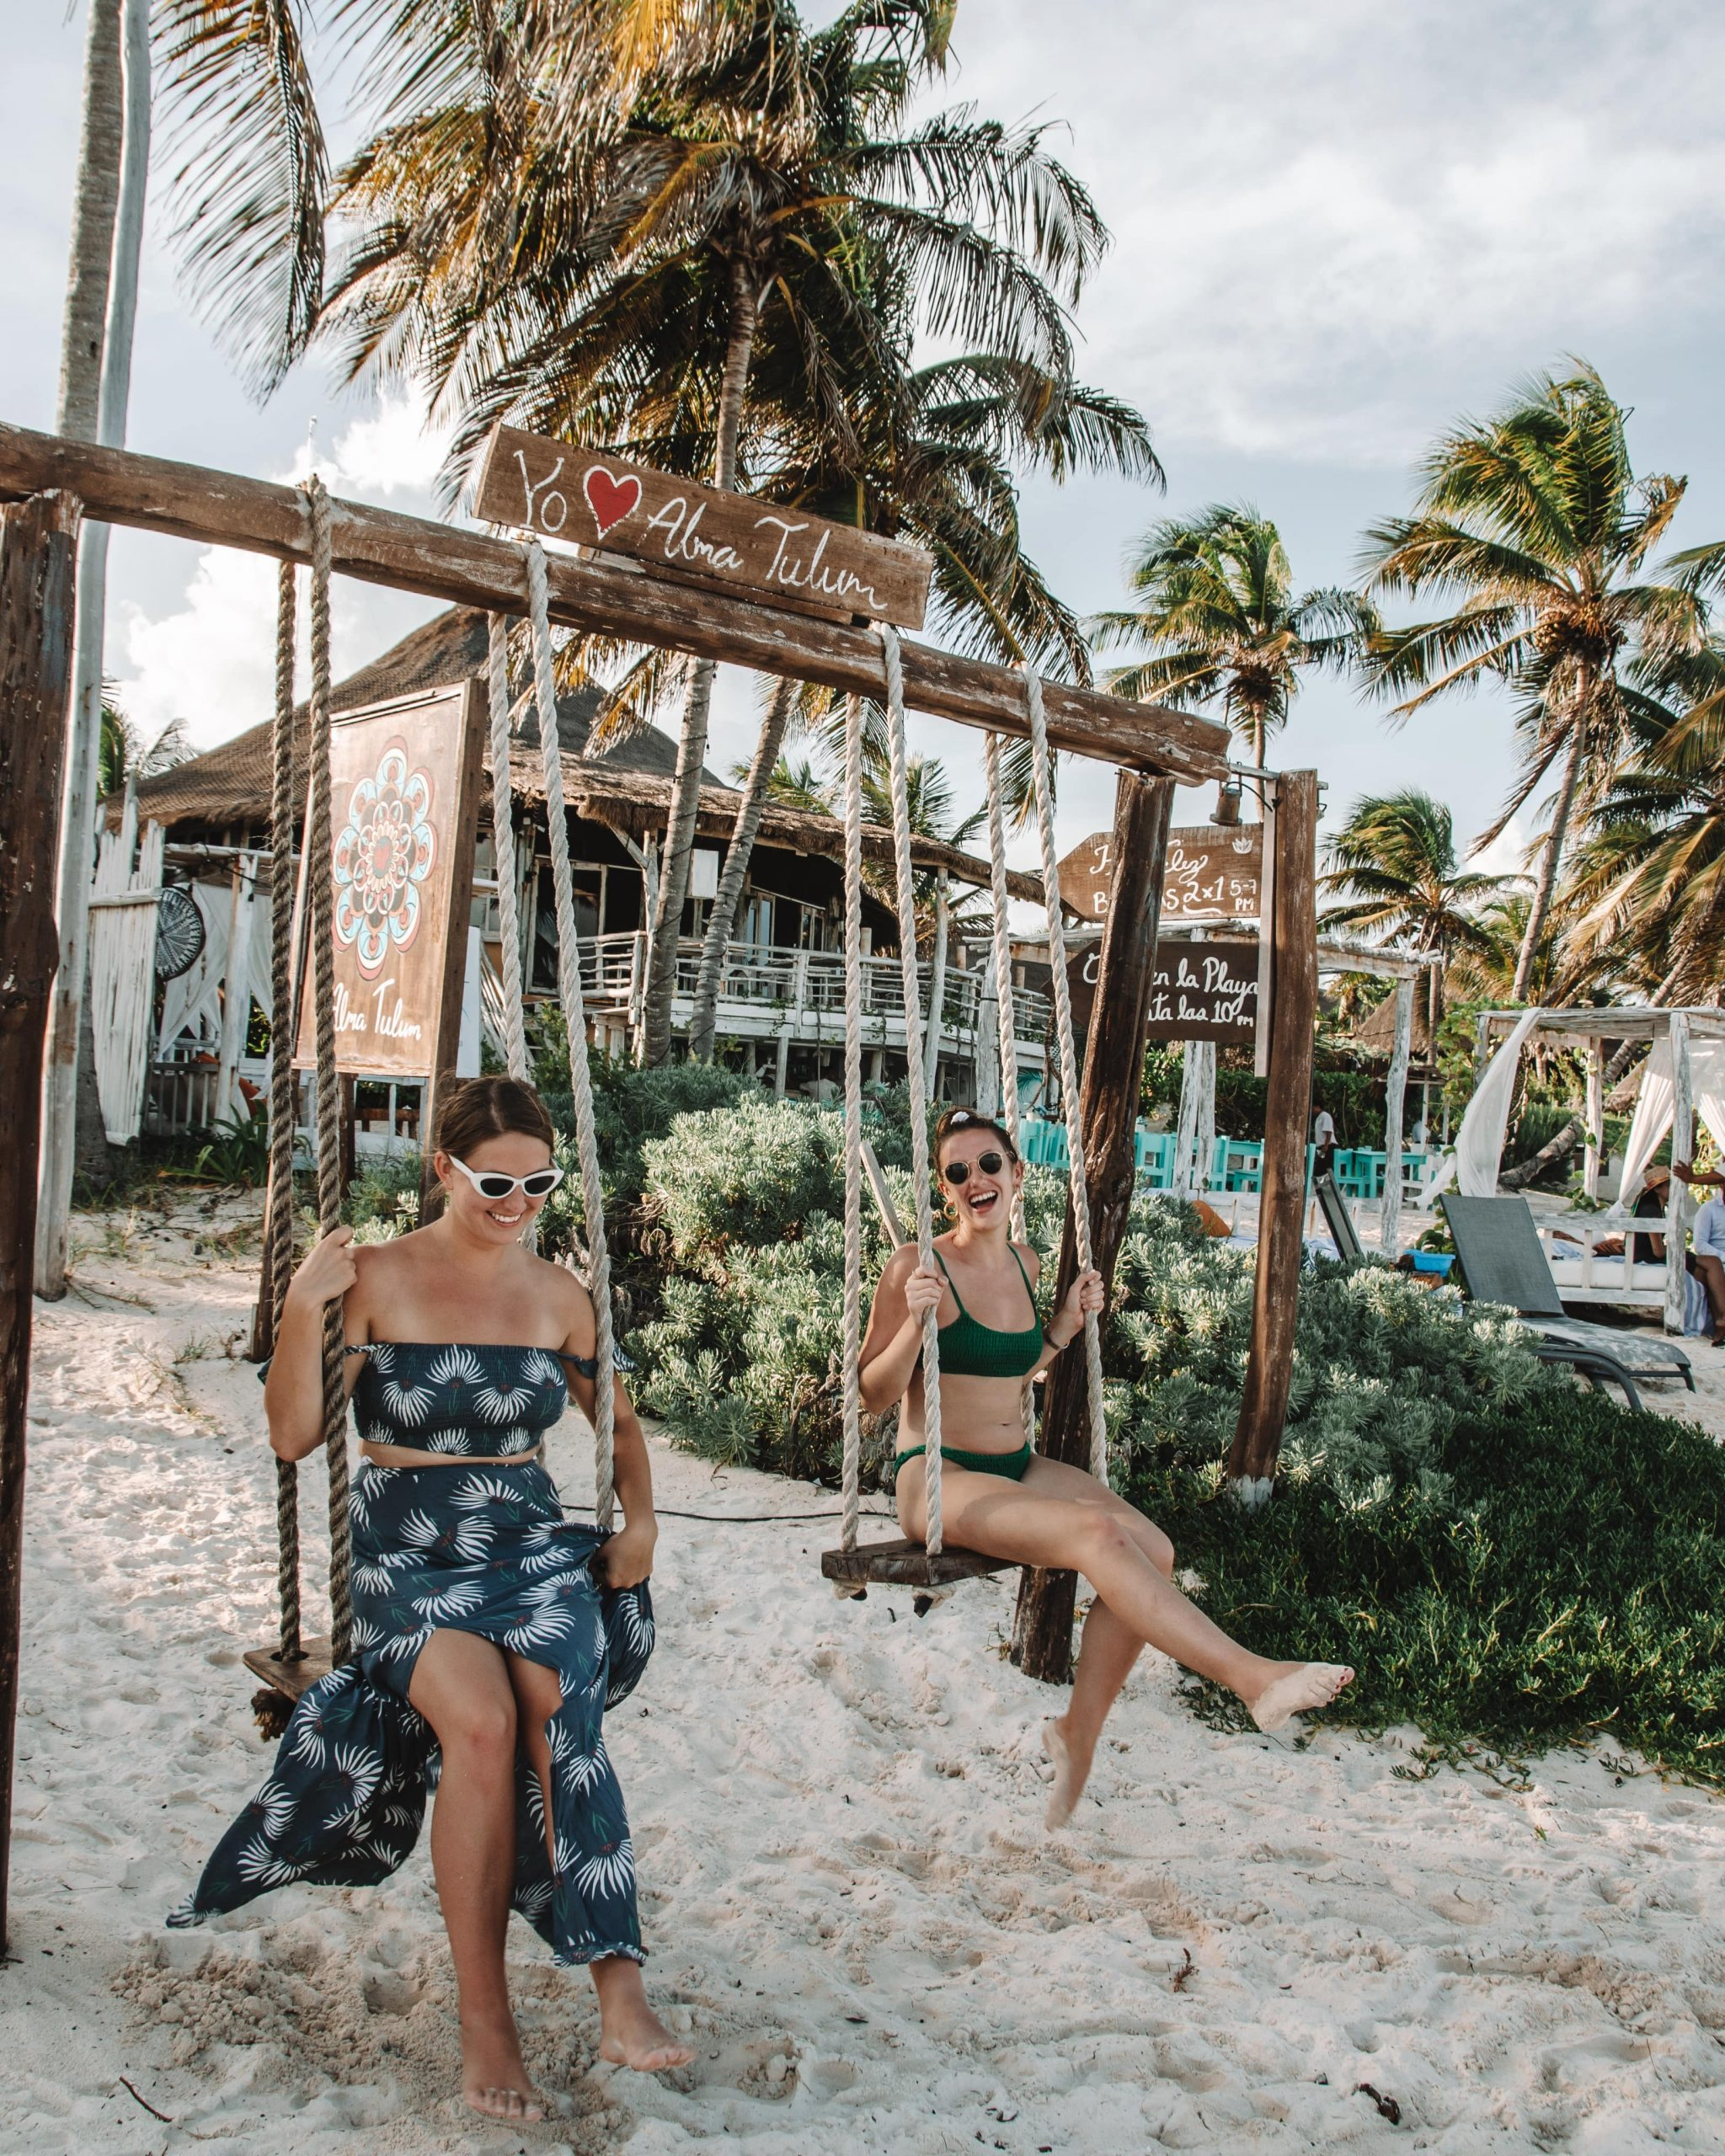 Group trip for solo female travelers in Tulum Mexico